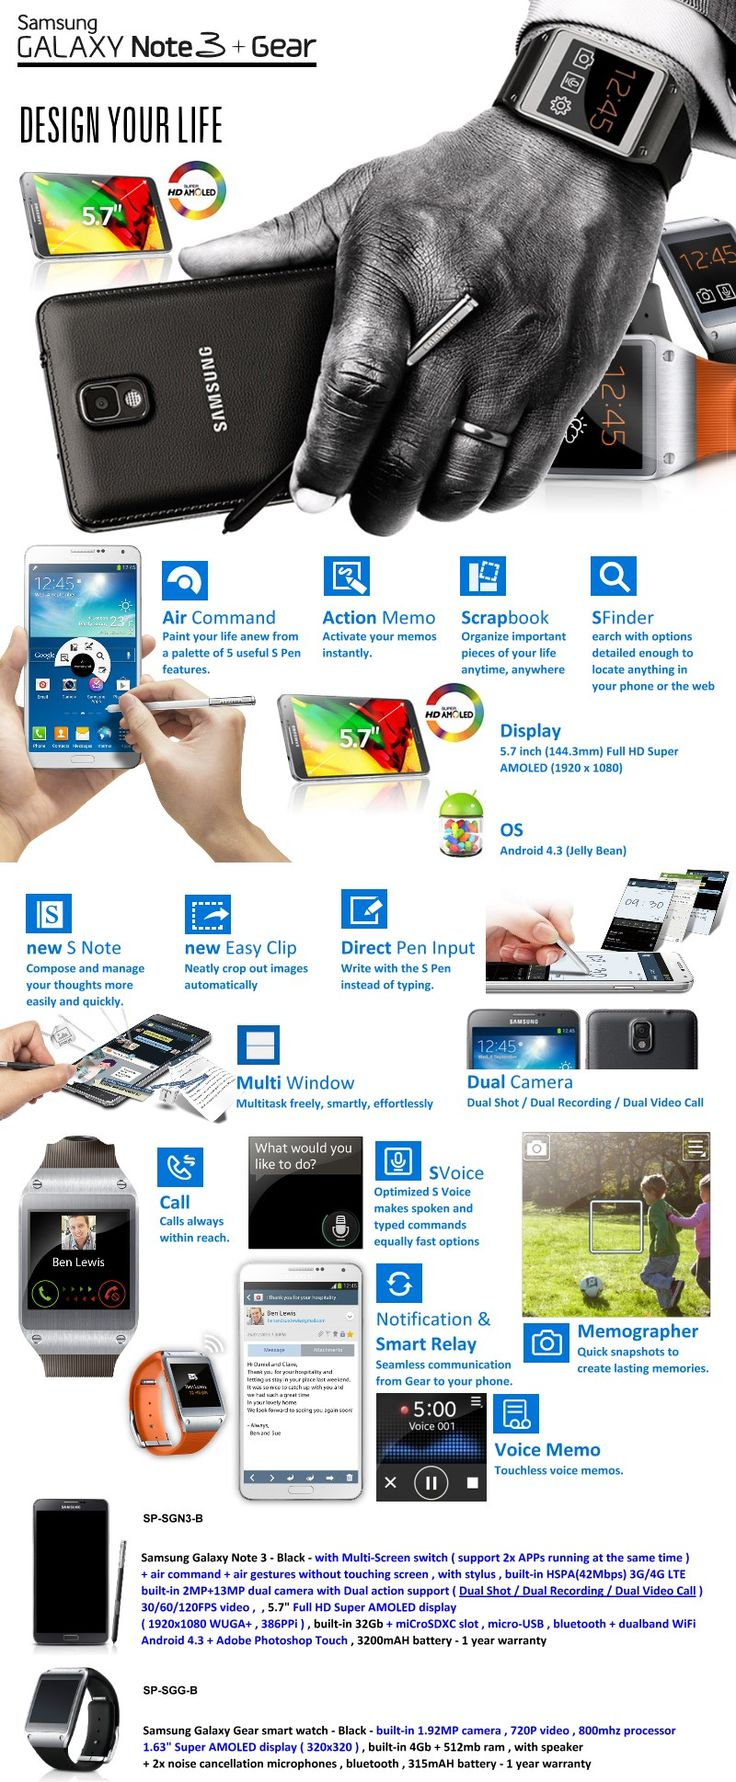 How to use scrapbook on galaxy note 3 - Samsung Note 3 Gear